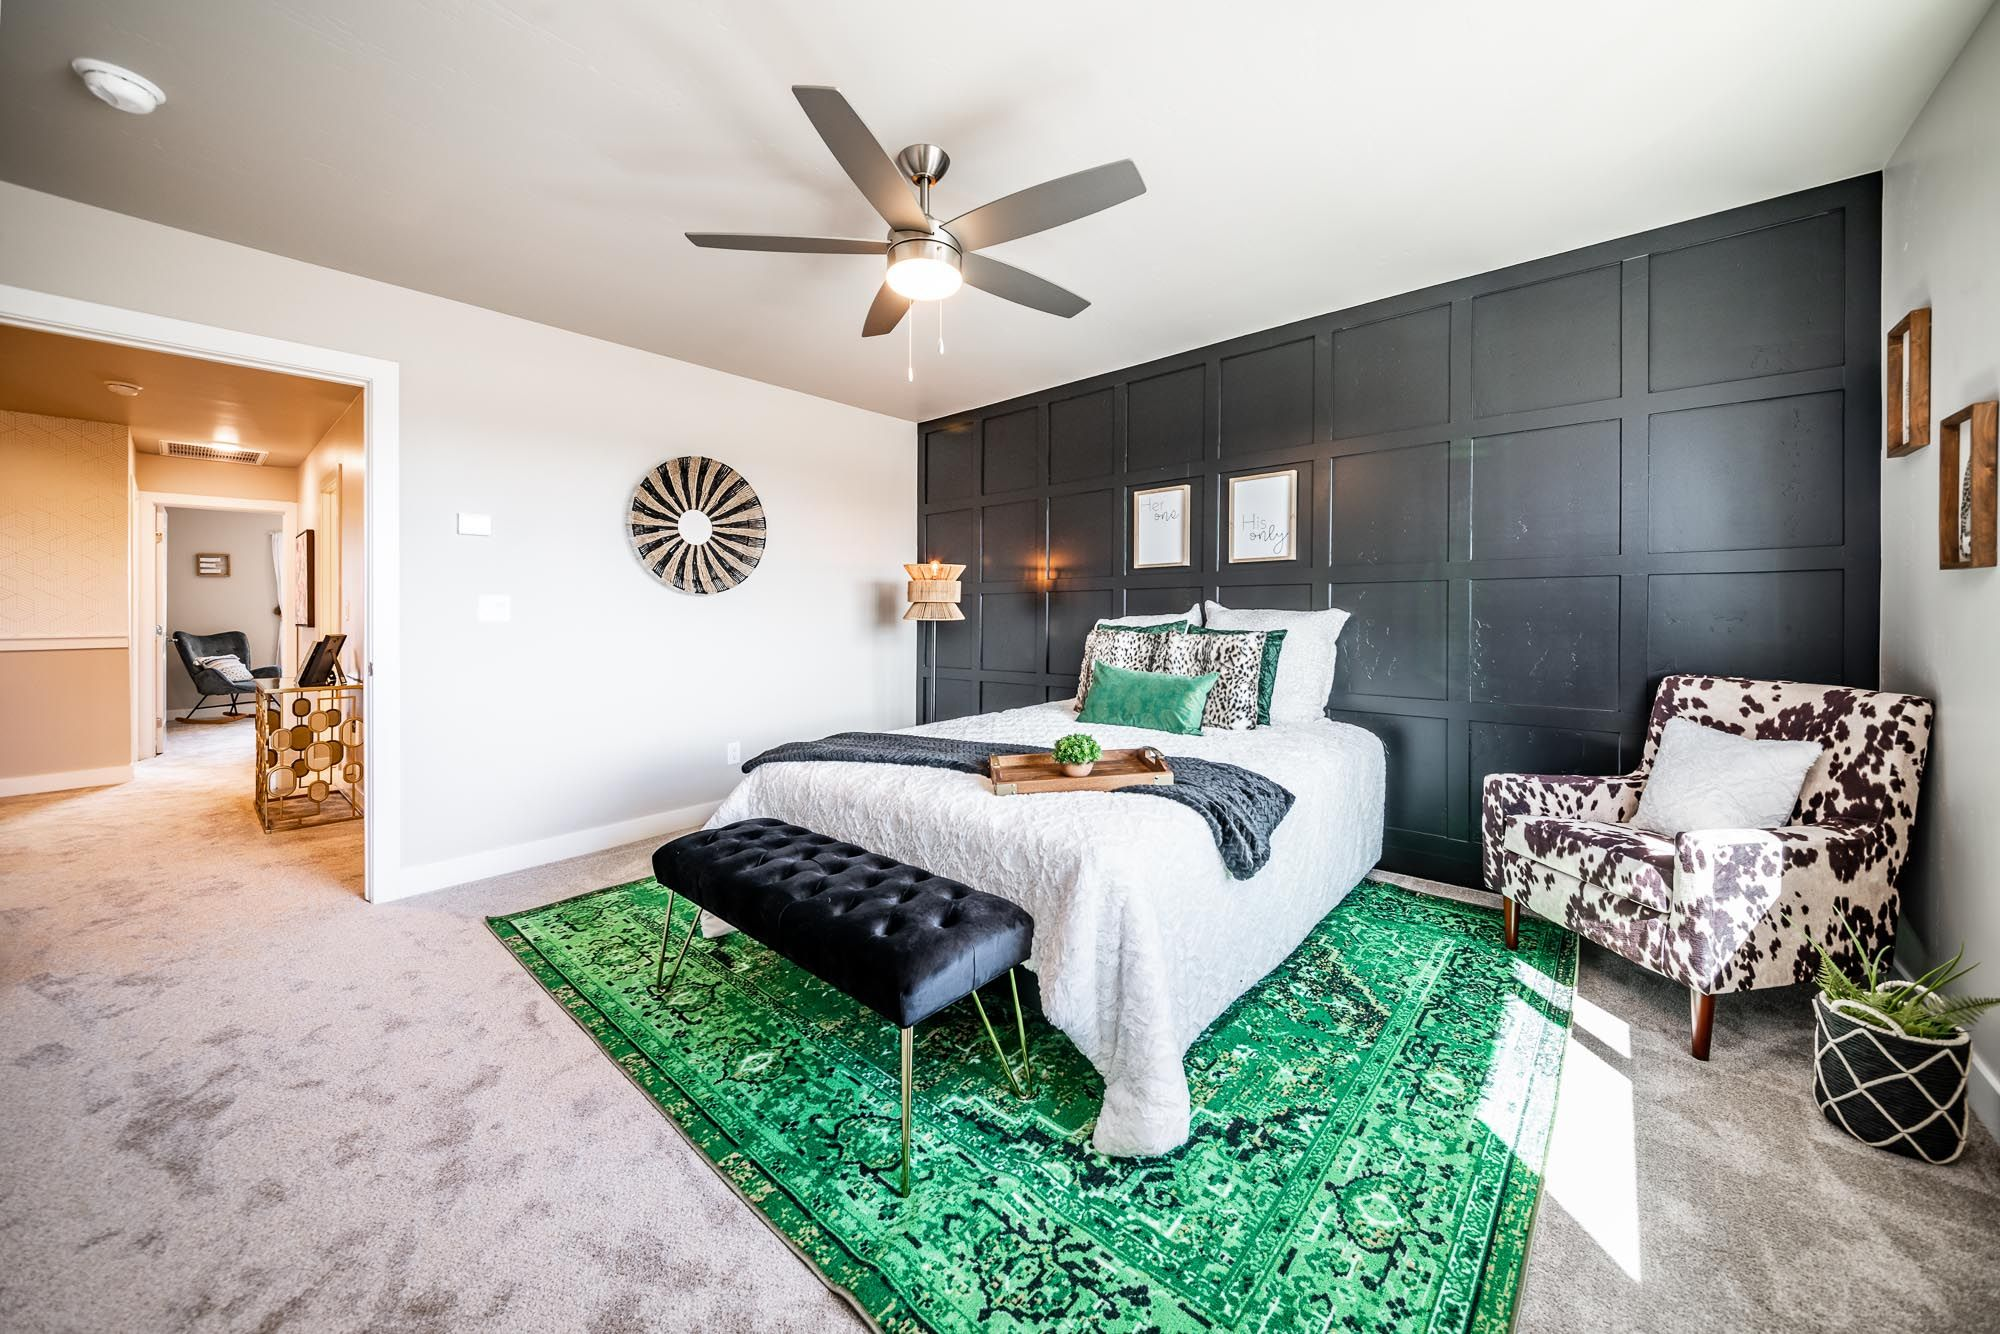 Bedroom featured in the Plan 1 By Solid Homes in Flagstaff, AZ